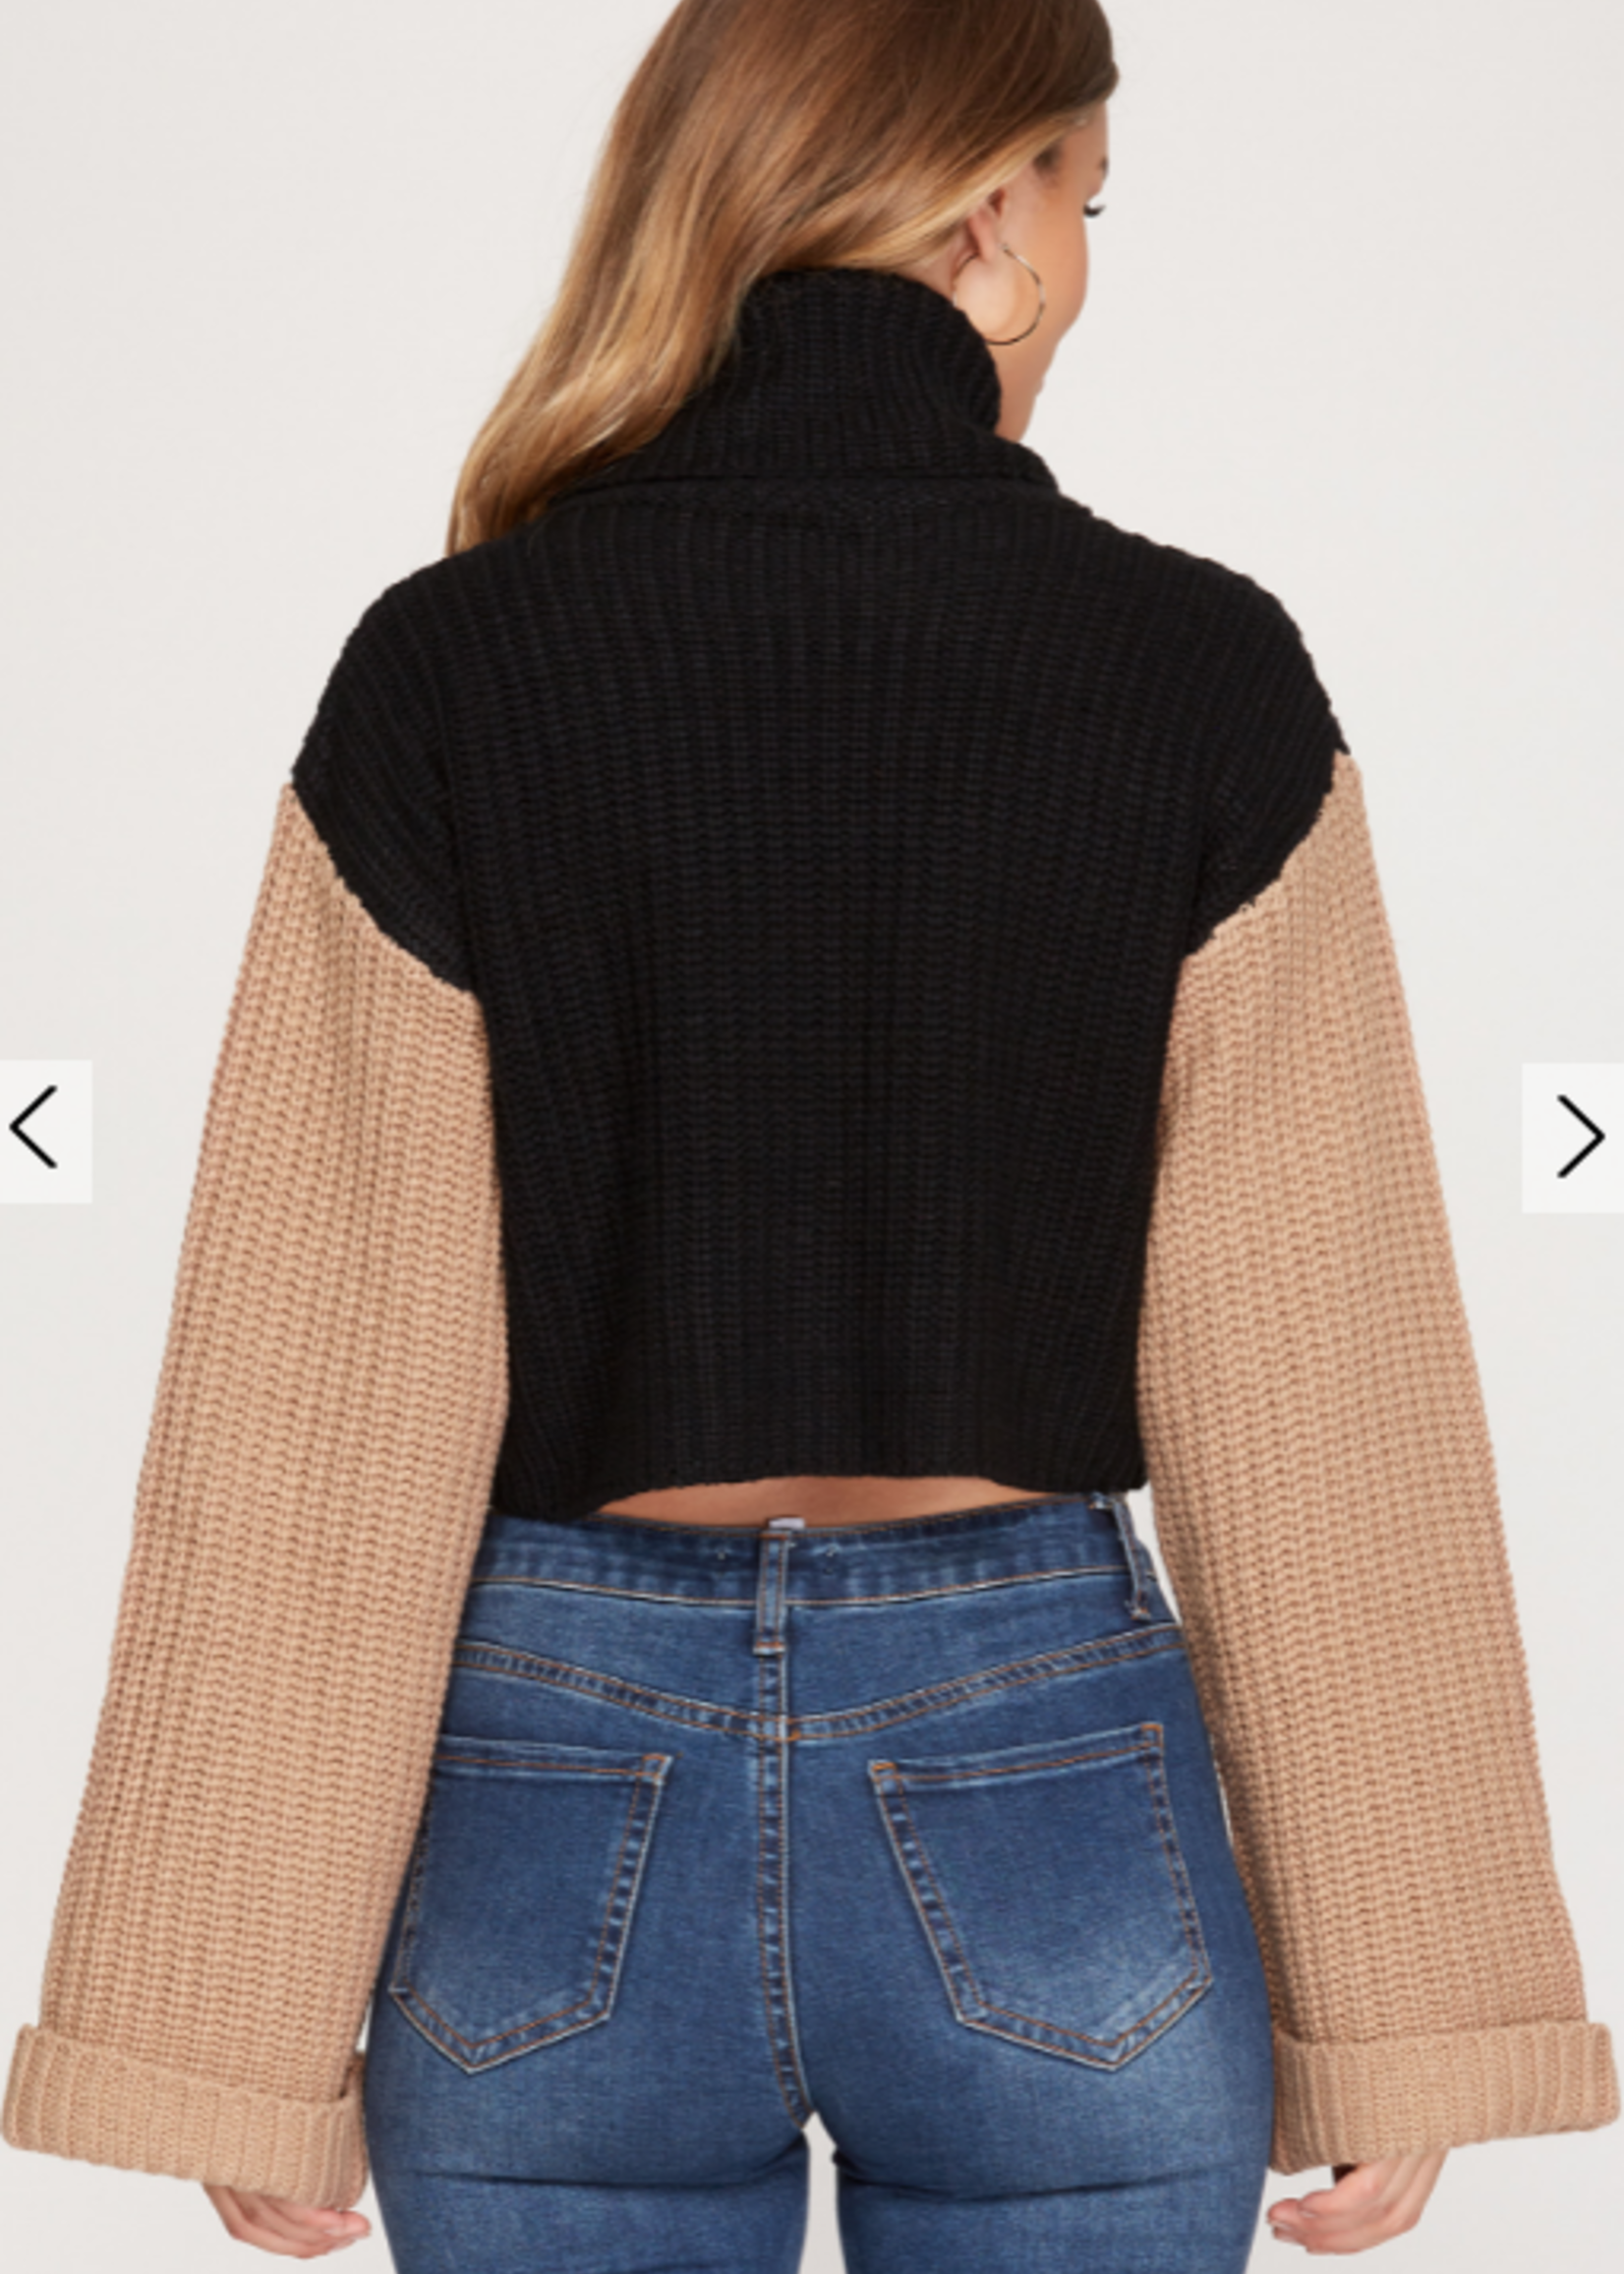 Better Together Colorblock Sweater